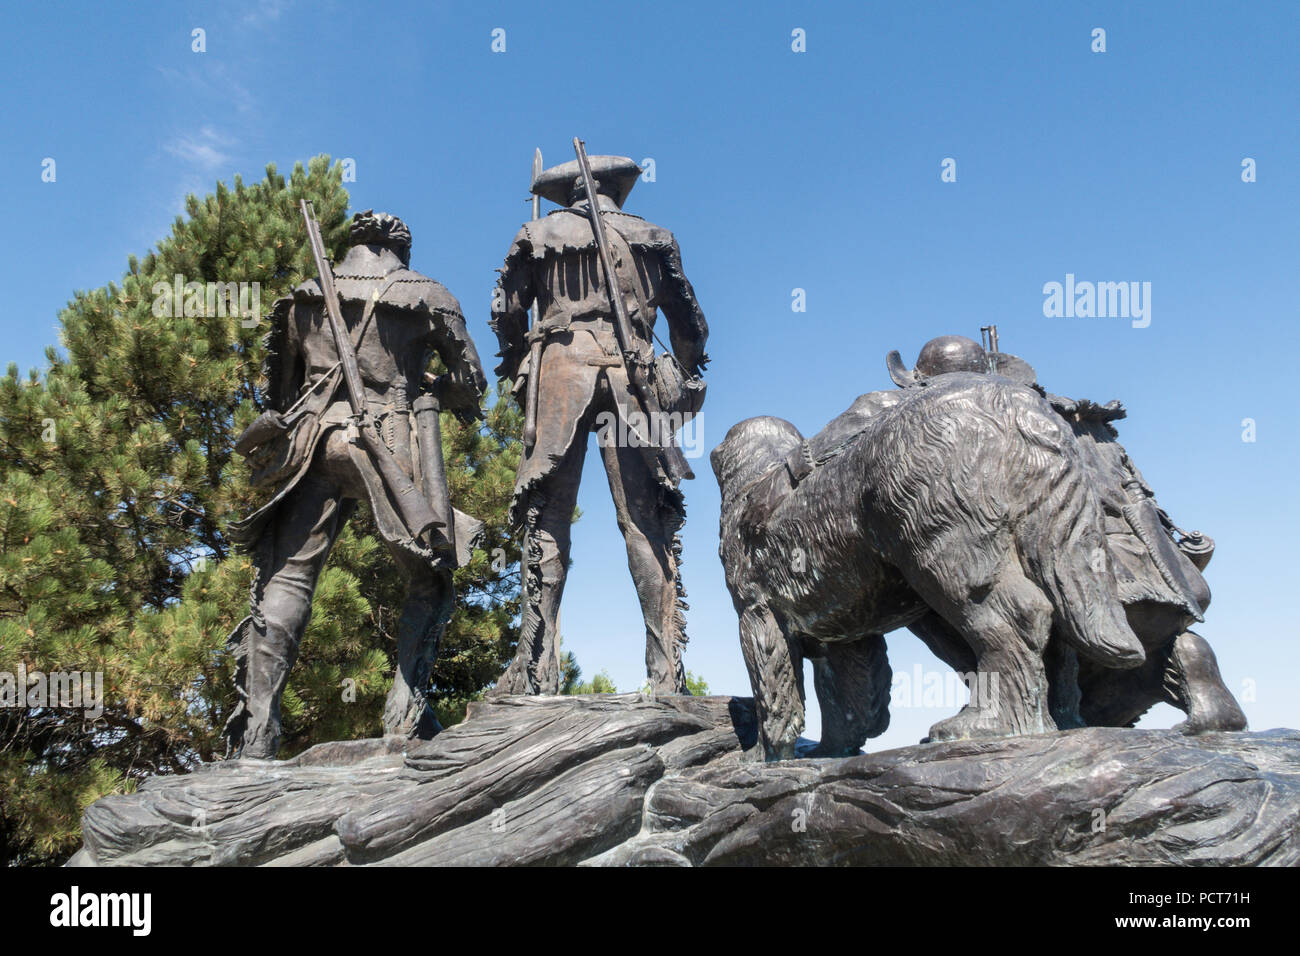 'Explorers at the Portage' Lewis and Clark statue overlooking Great Falls, MT, USA - Stock Image